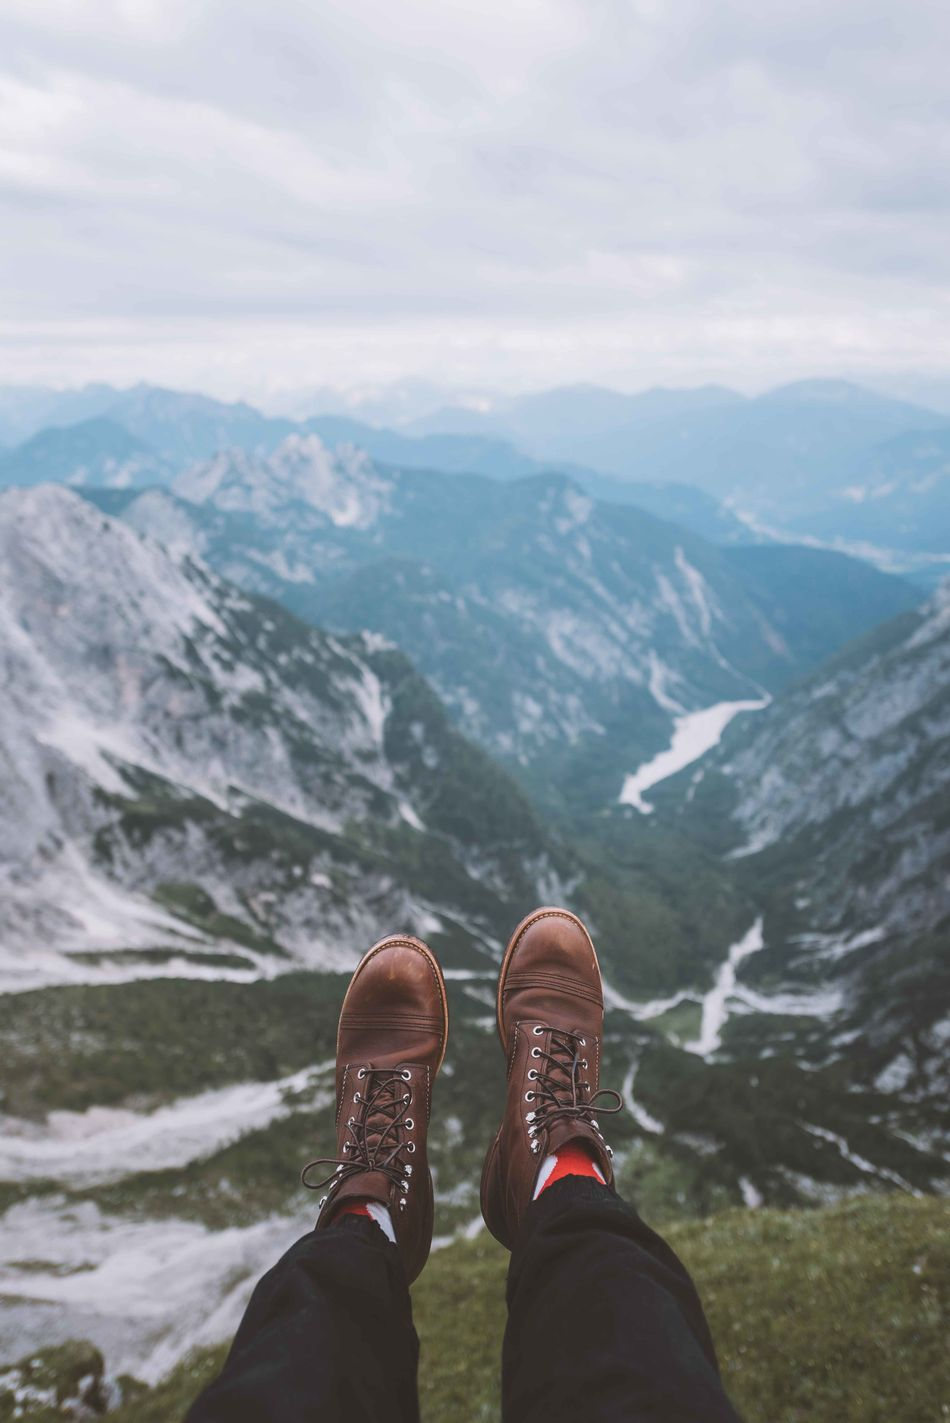 Adventure Beauty In Nature Day Hiking Human Body Part Human Leg Leisure Activity Lifestyles Low Section Mountain Mountain Range Nature One Man Only One Person Outdoors Personal Perspective Scenics Shoe Sky